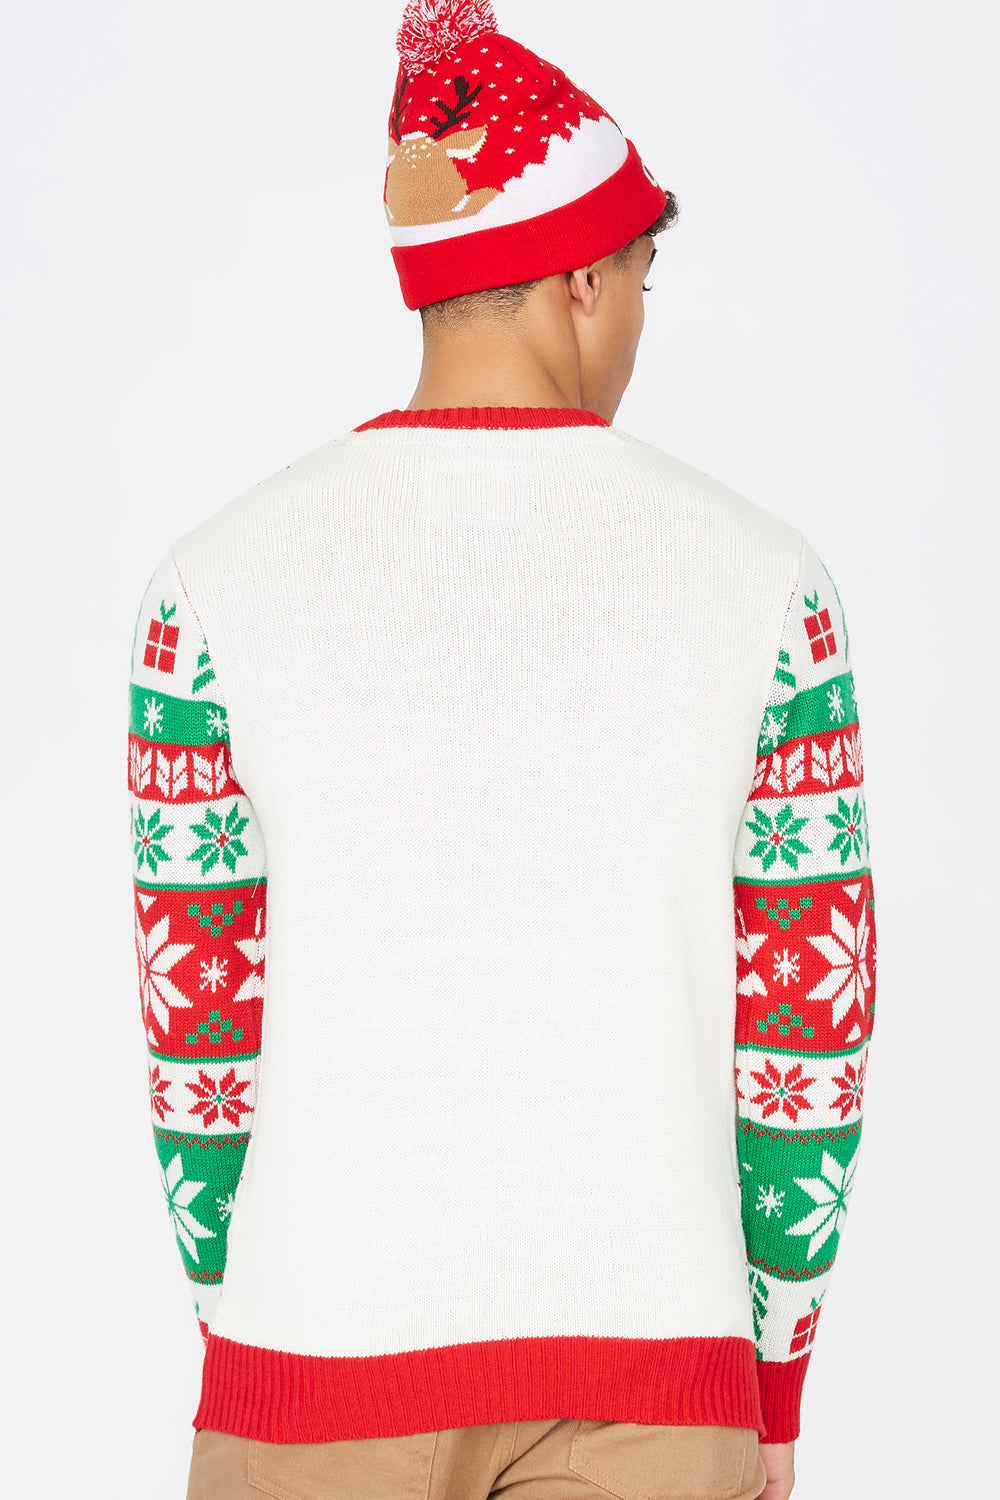 Merry Christmas Reindeer Ugly Christmas Sweater White